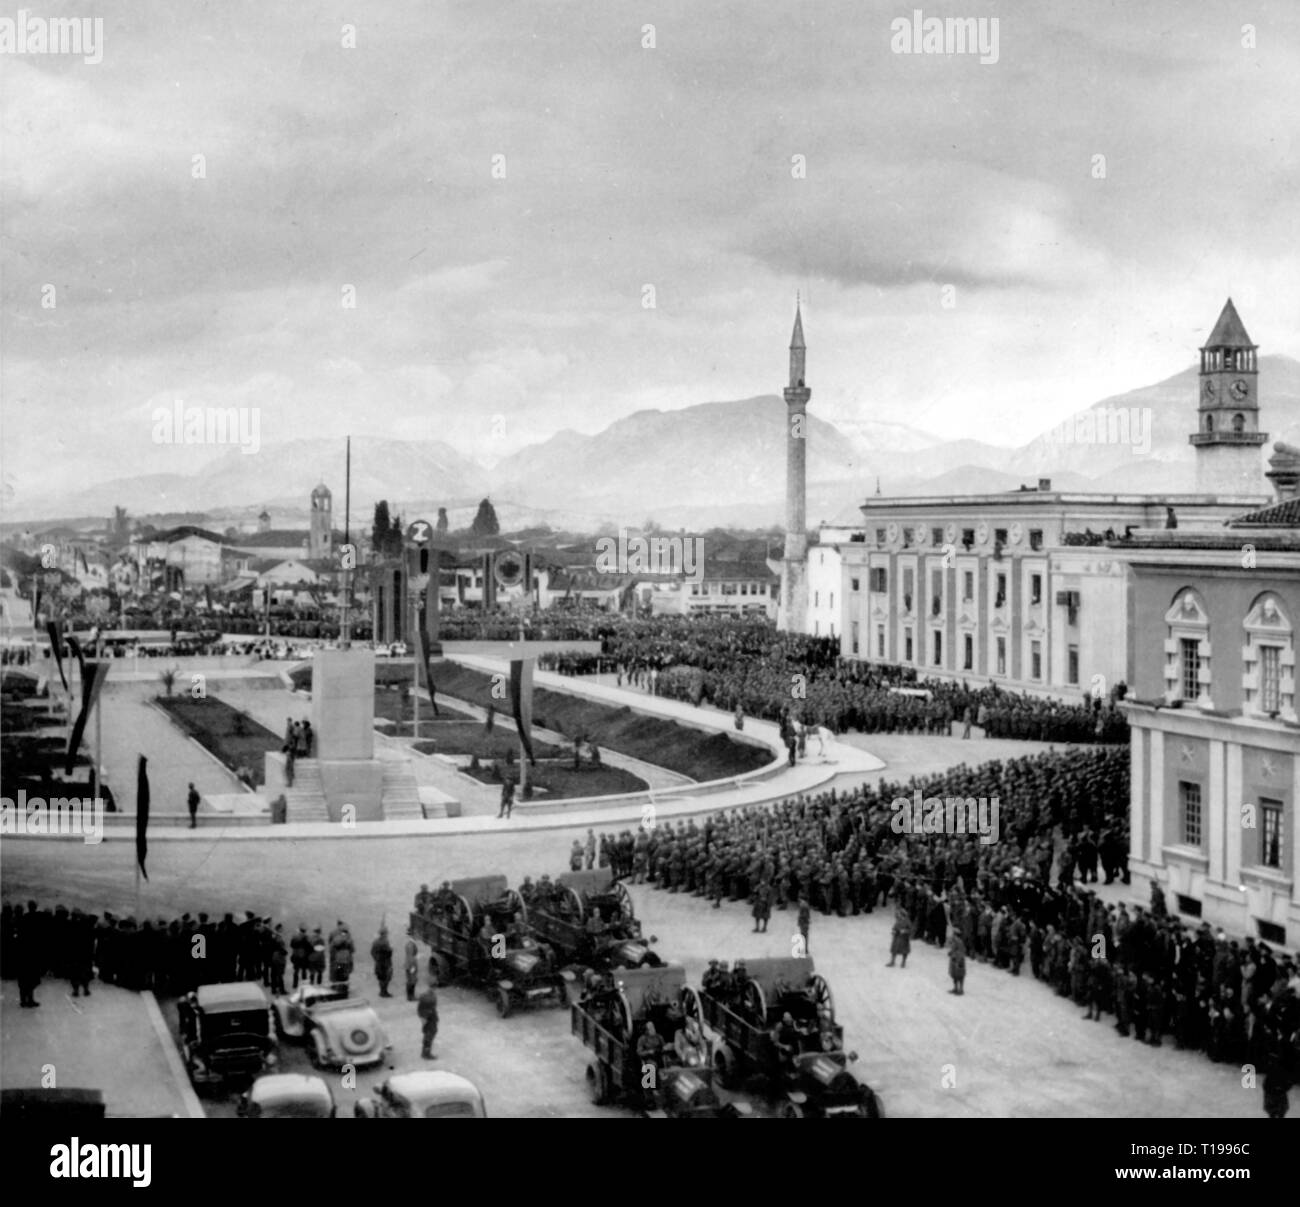 geography / travel historic, Albania, cities and communities, Tirana, squares, Skanderbeg square, military review, 1930s, Additional-Rights-Clearance-Info-Not-Available - Stock Image